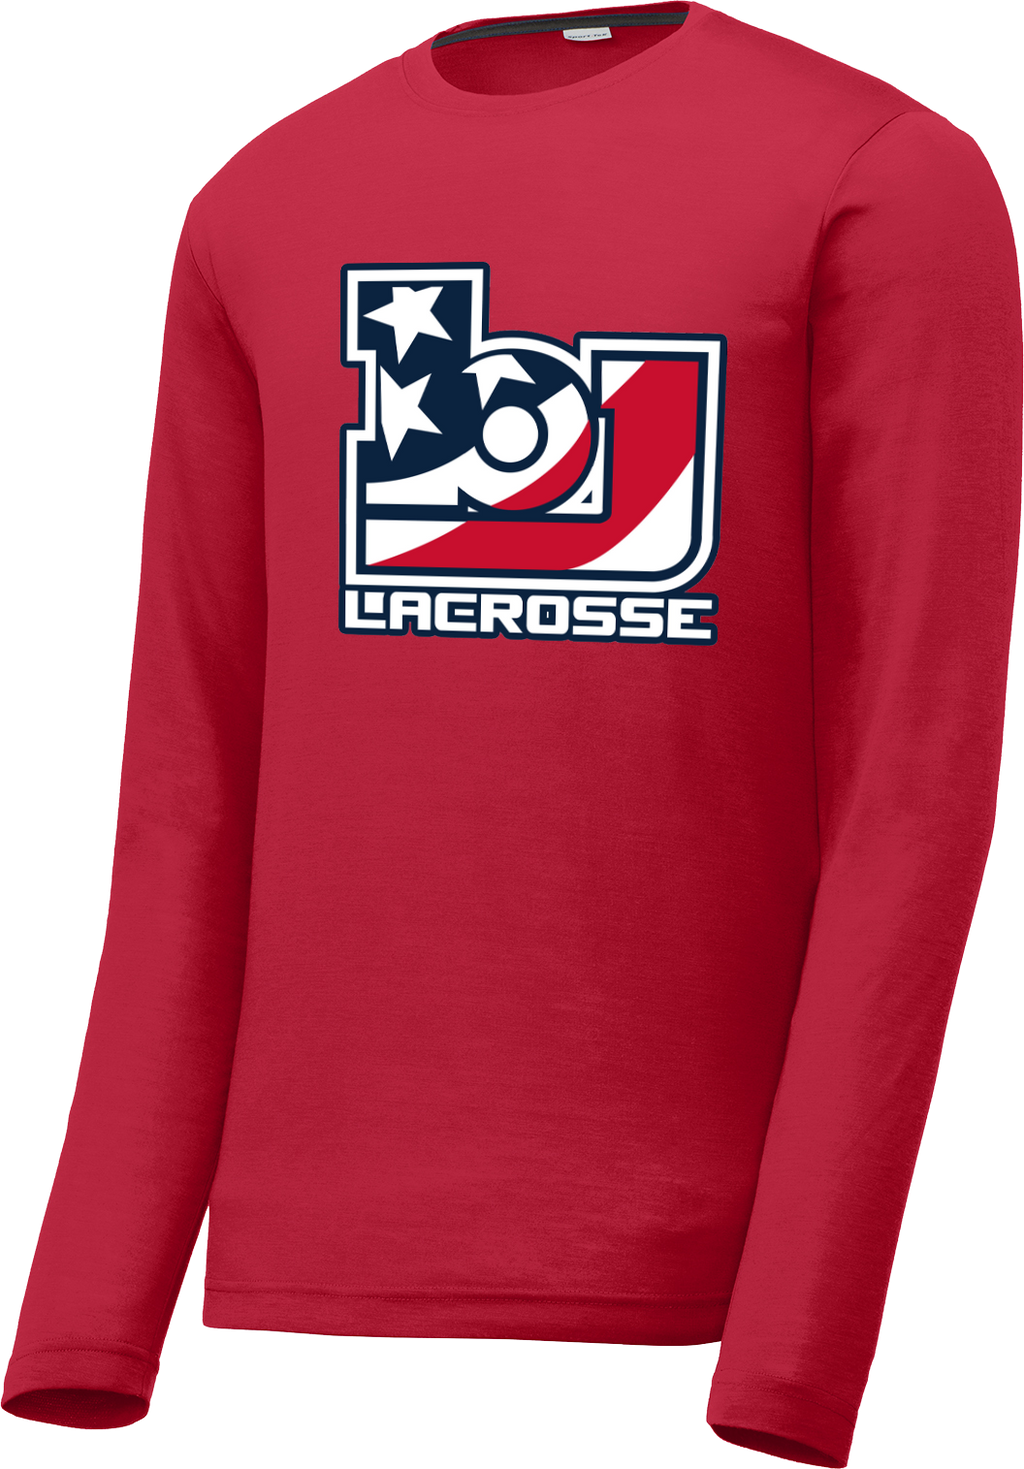 Bob Jones Lacrosse Long Sleeve CottonTouch Performance Shirt